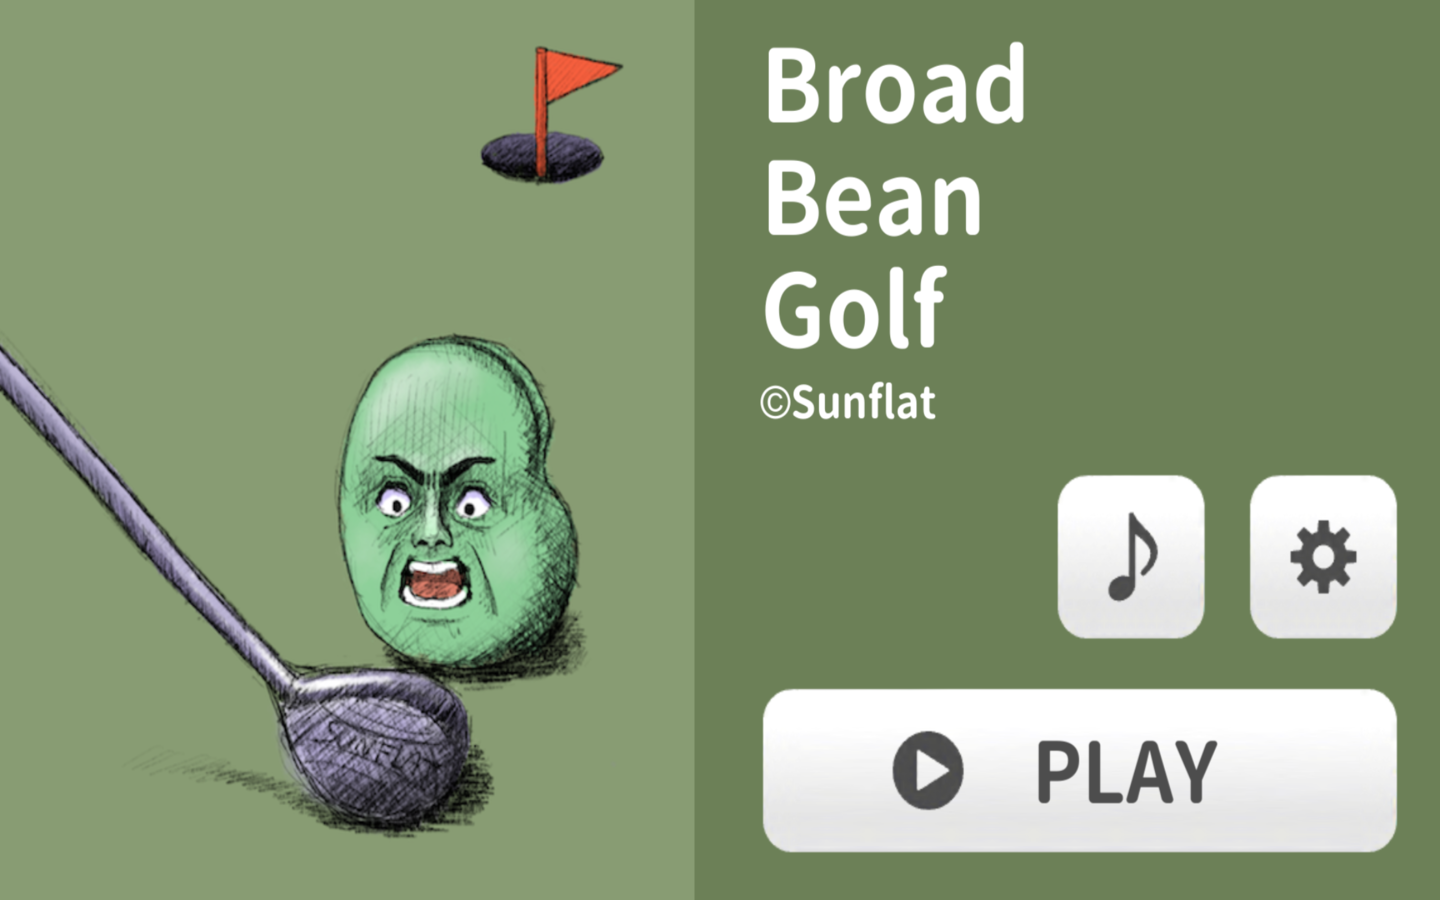 Broad Bean Golf